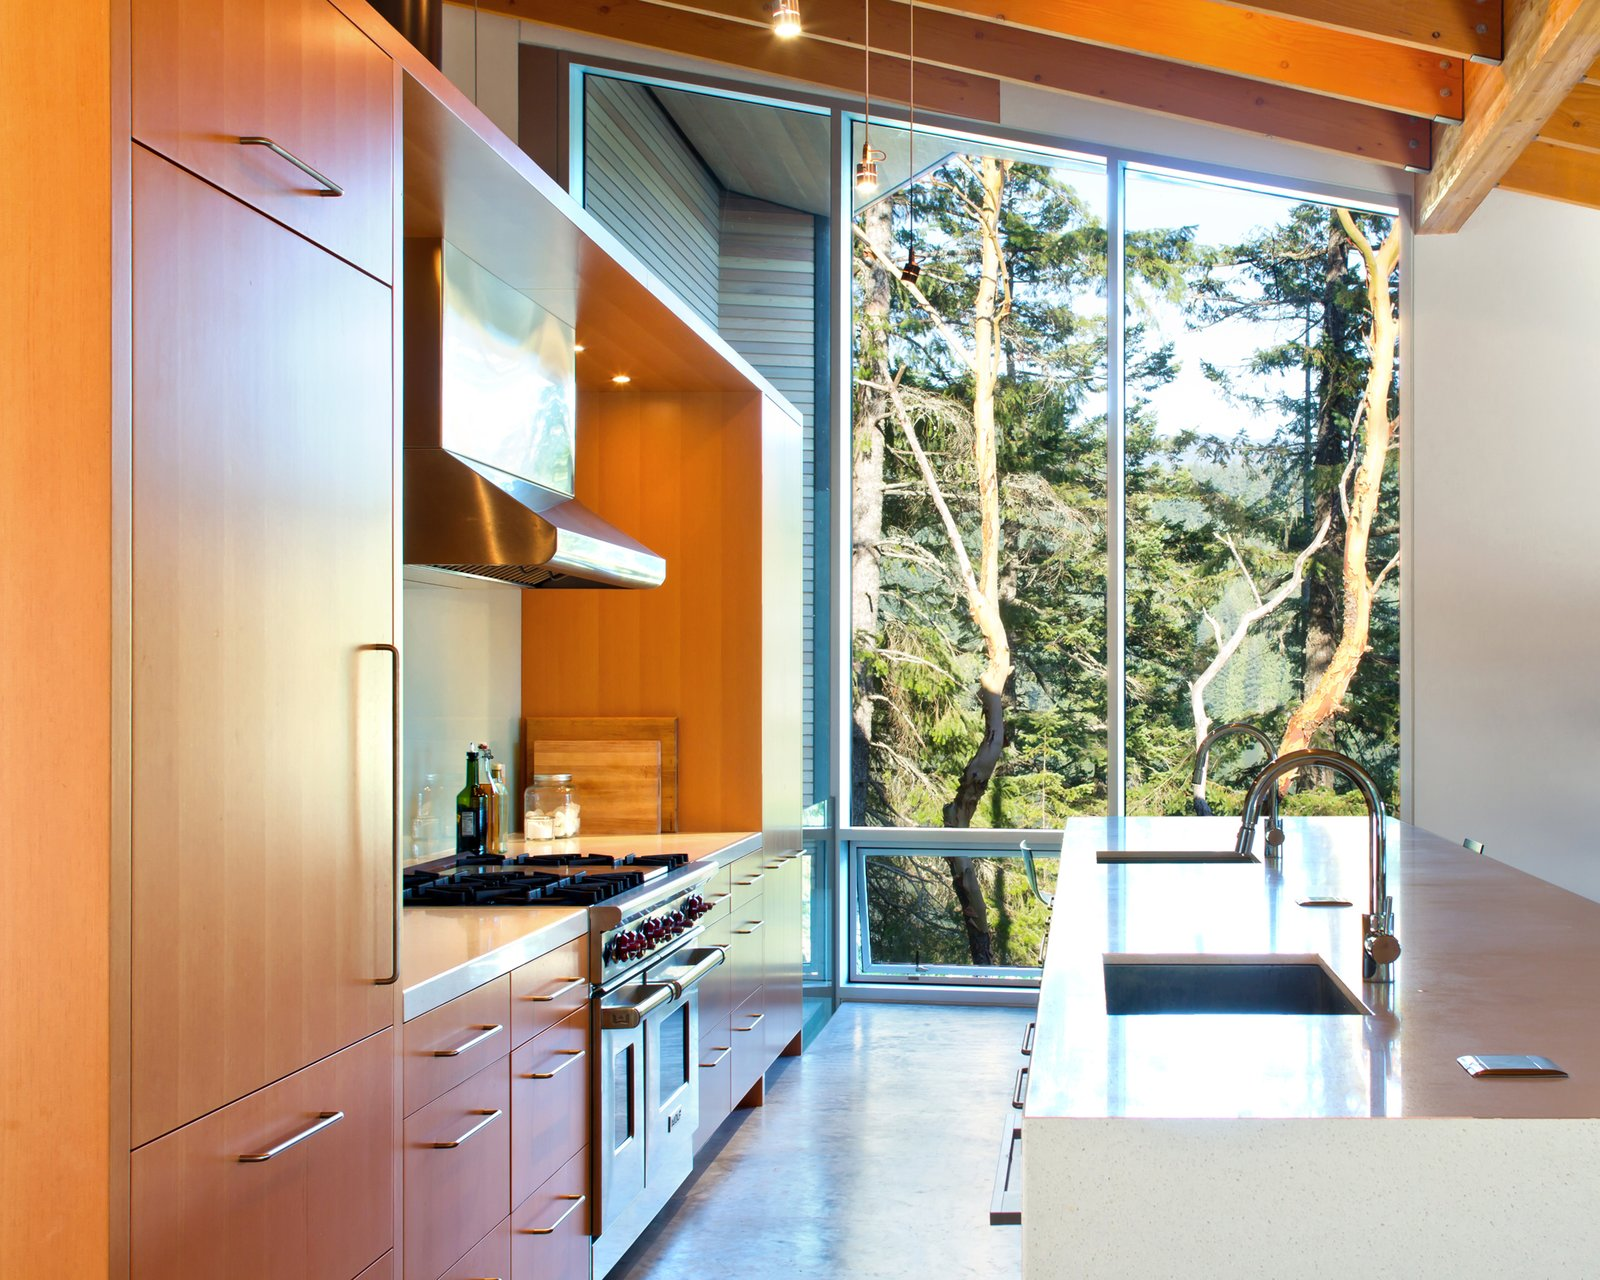 Light streams in through the kitchen from massive, floor-to-ceiling windows that offer peaceful views of the outside foliage. Tagged: Kitchen and Wood Cabinet.  Best Photos from Gambier Retreat